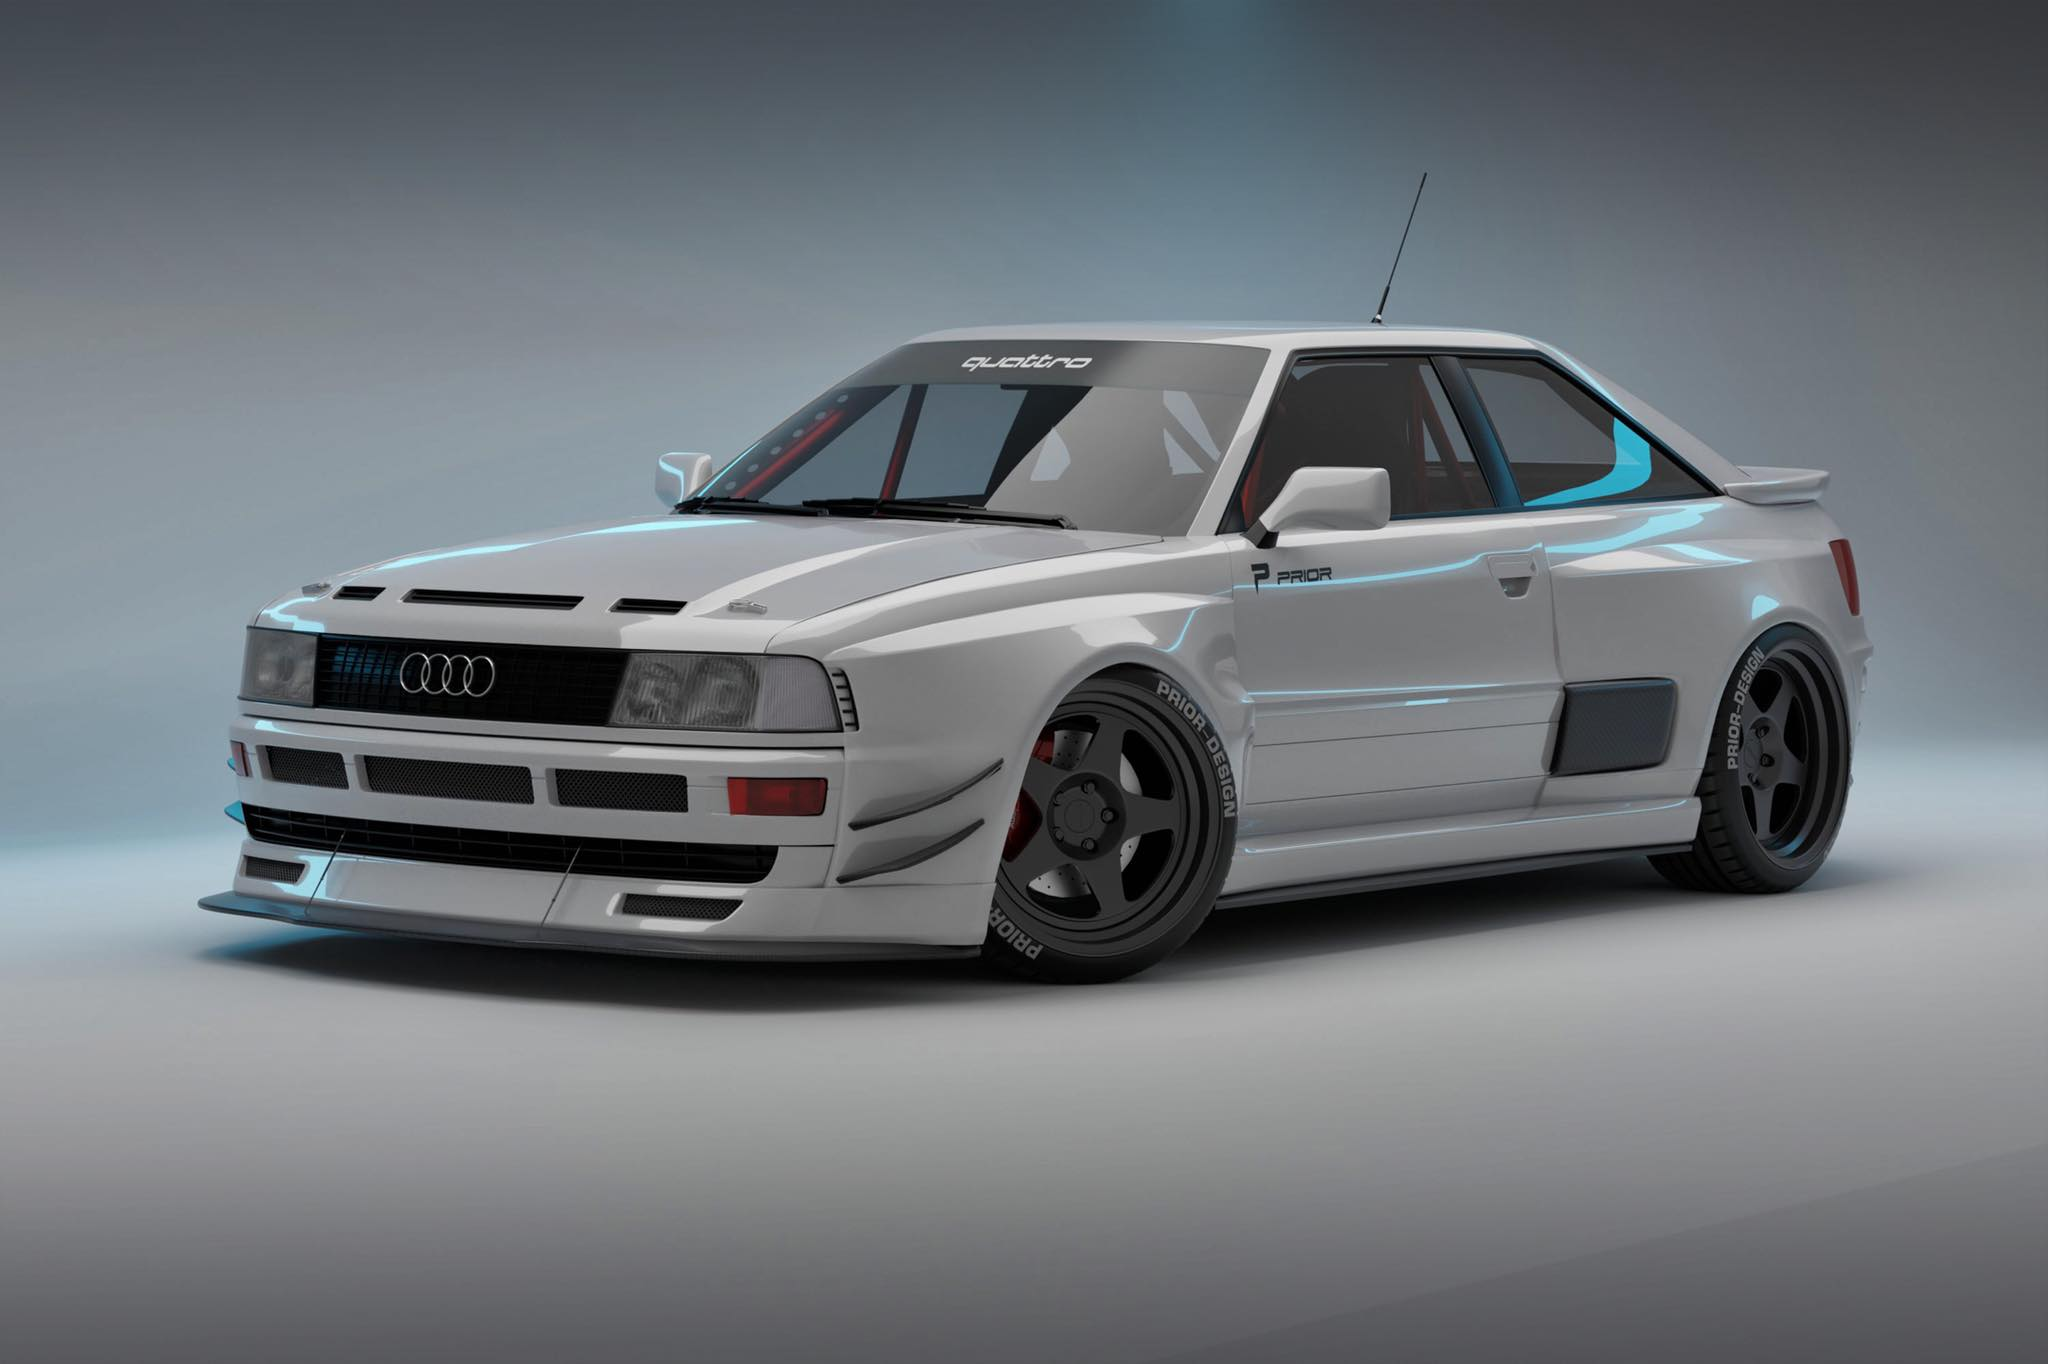 PRIOR brings wide body kit for the Audi Coupé onto the market